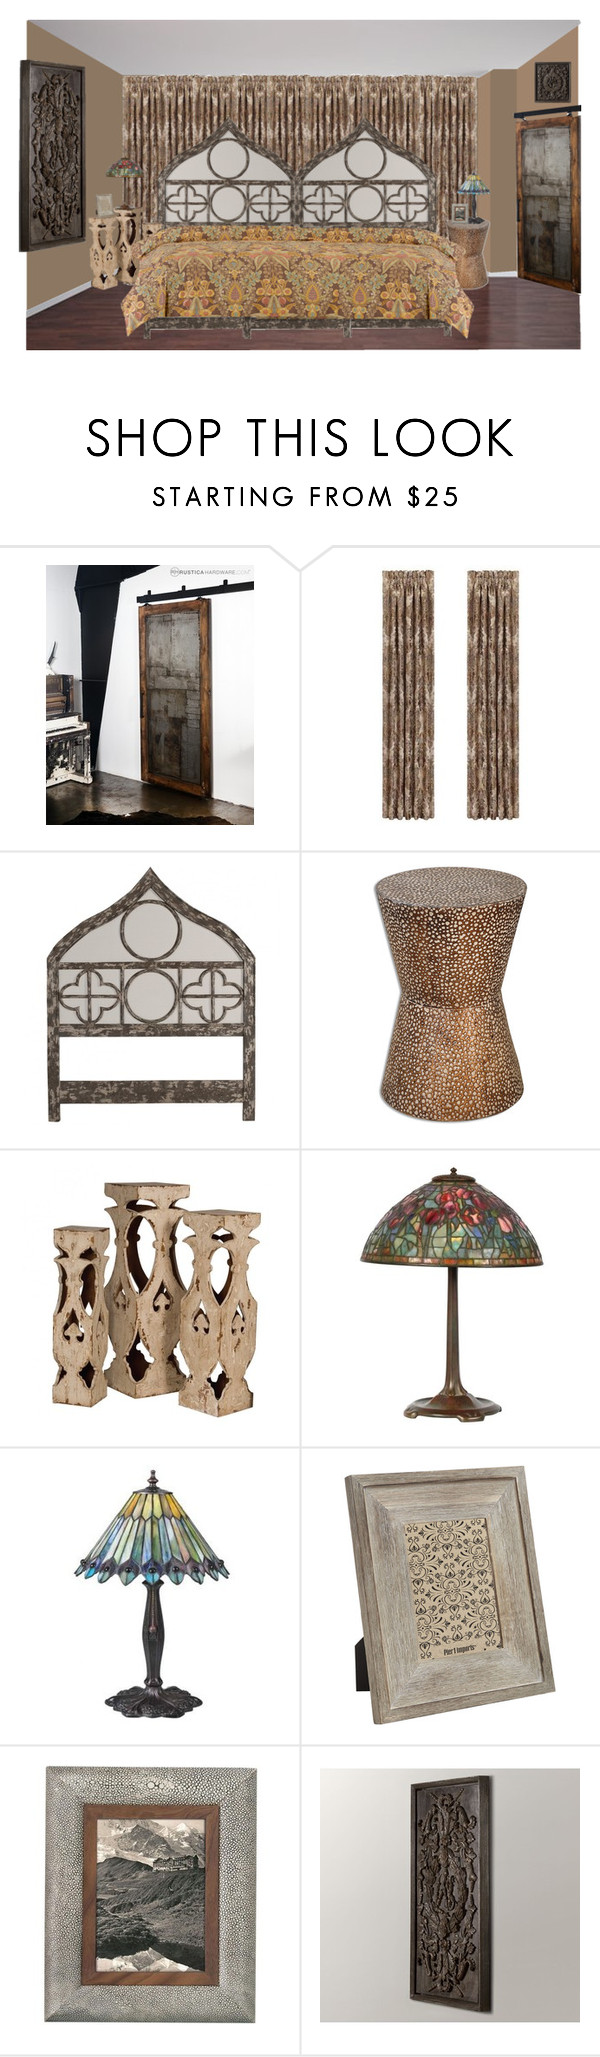 """mordern gothic"" by sterlingkitten on Polyvore featuring interior, interiors, interior design, home, home decor, interior decorating, J. Queen New York, Uttermost, Pottery Barn and Tiffany & Co."